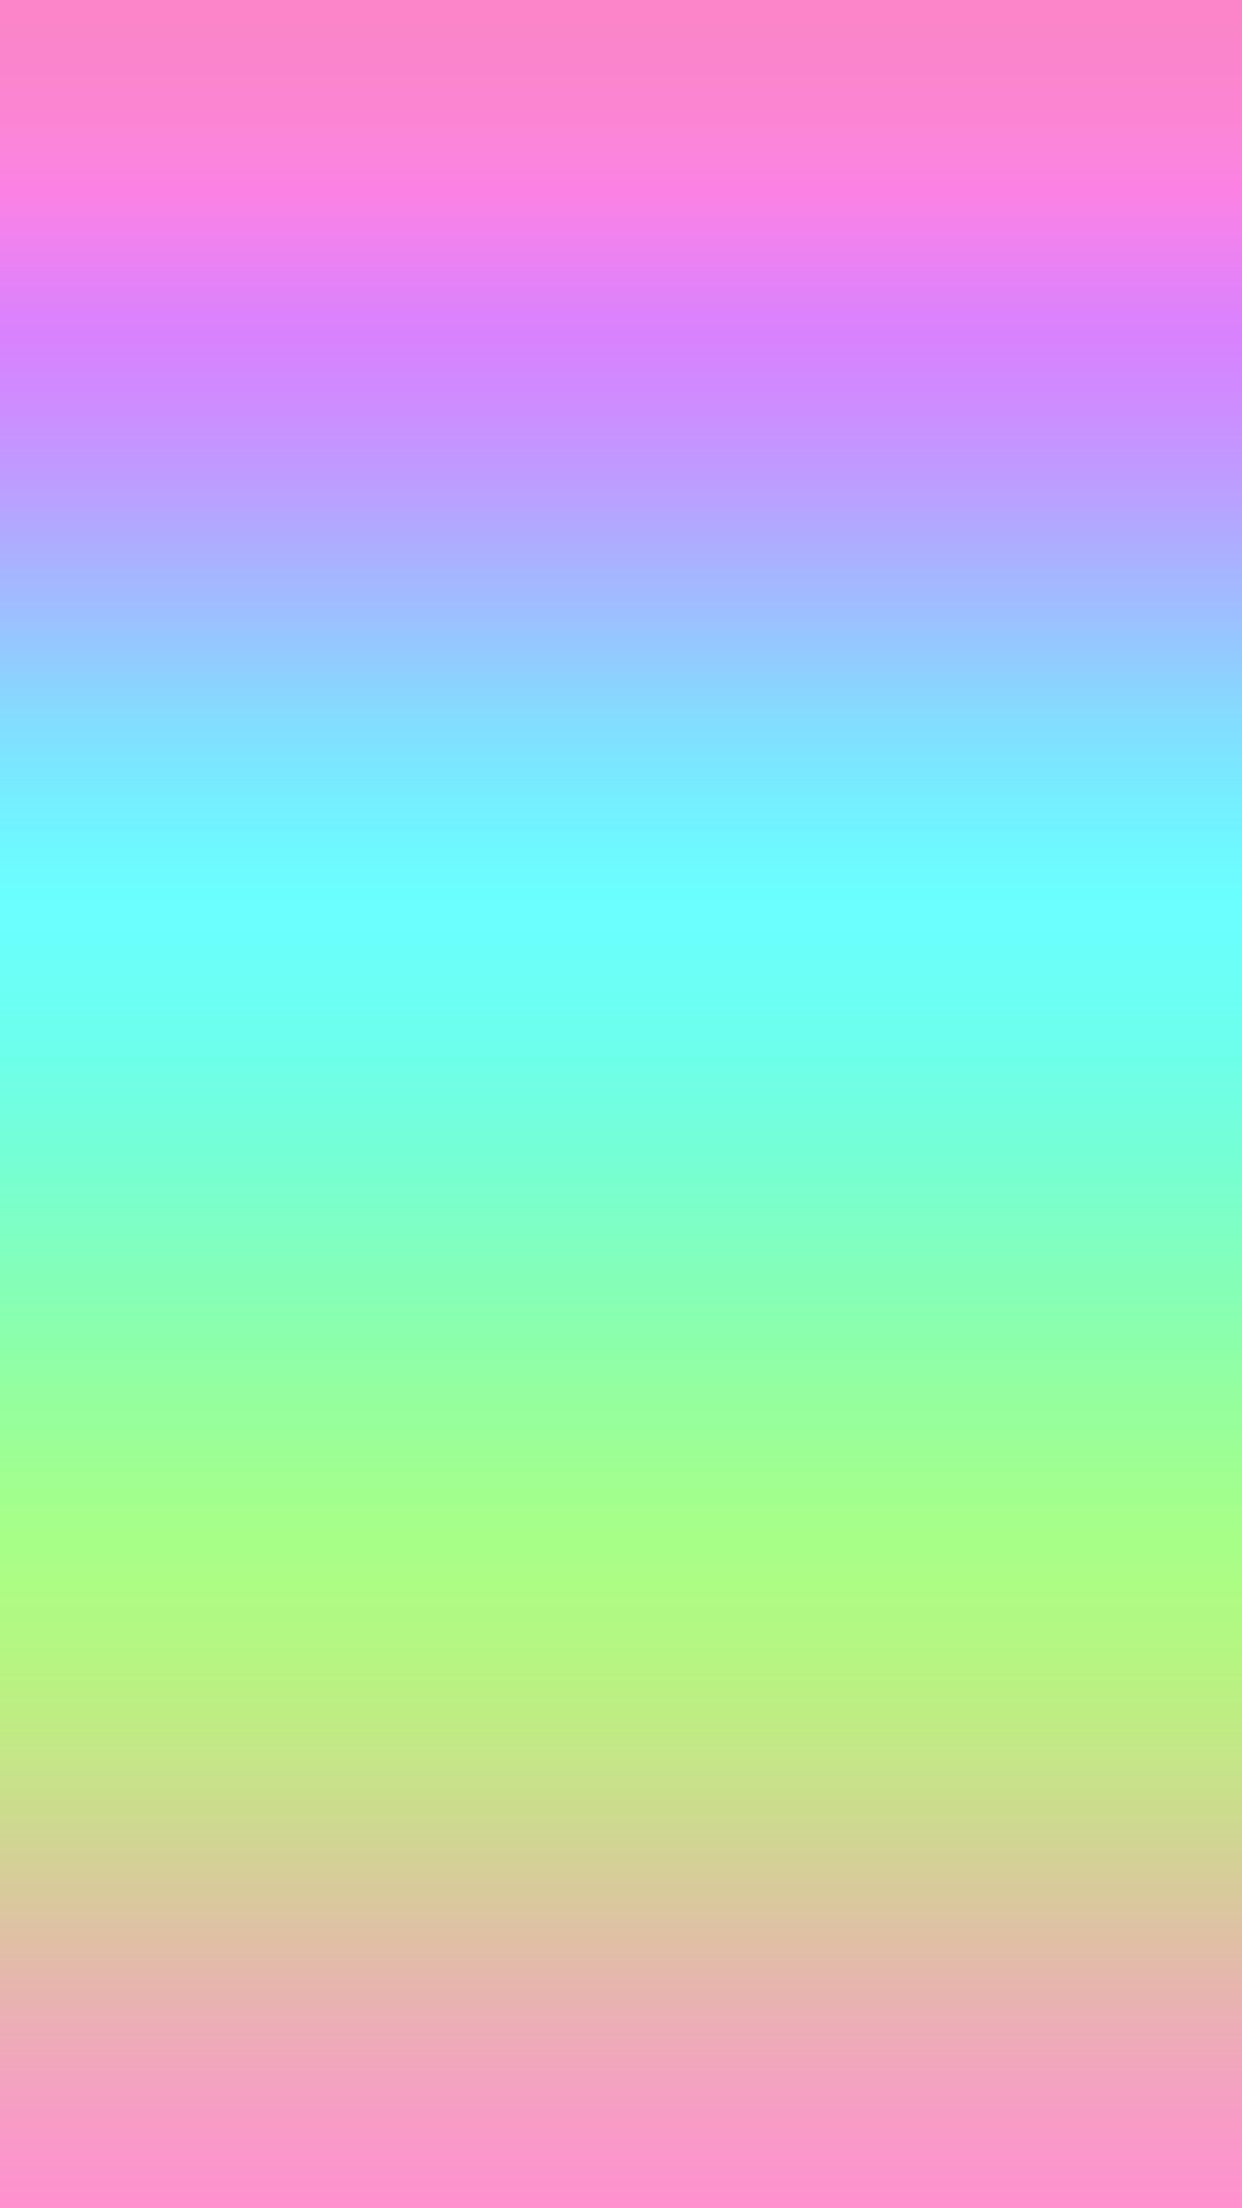 Pastel Rainbow Wallpapers Hd Resolution Extra Wallpaper 1080p